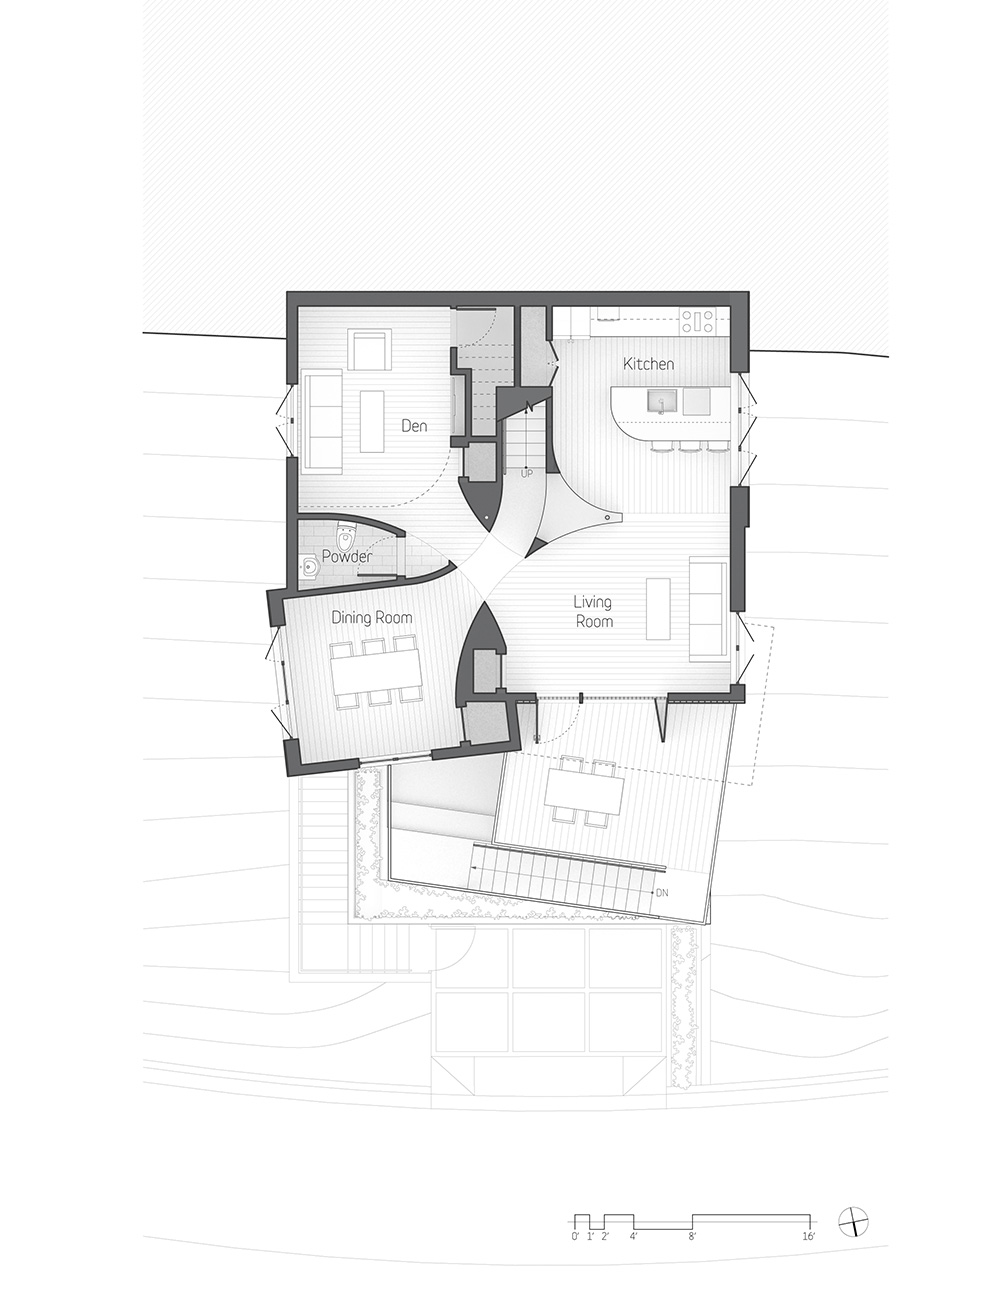 StackHouse_01_Plans_LVL3